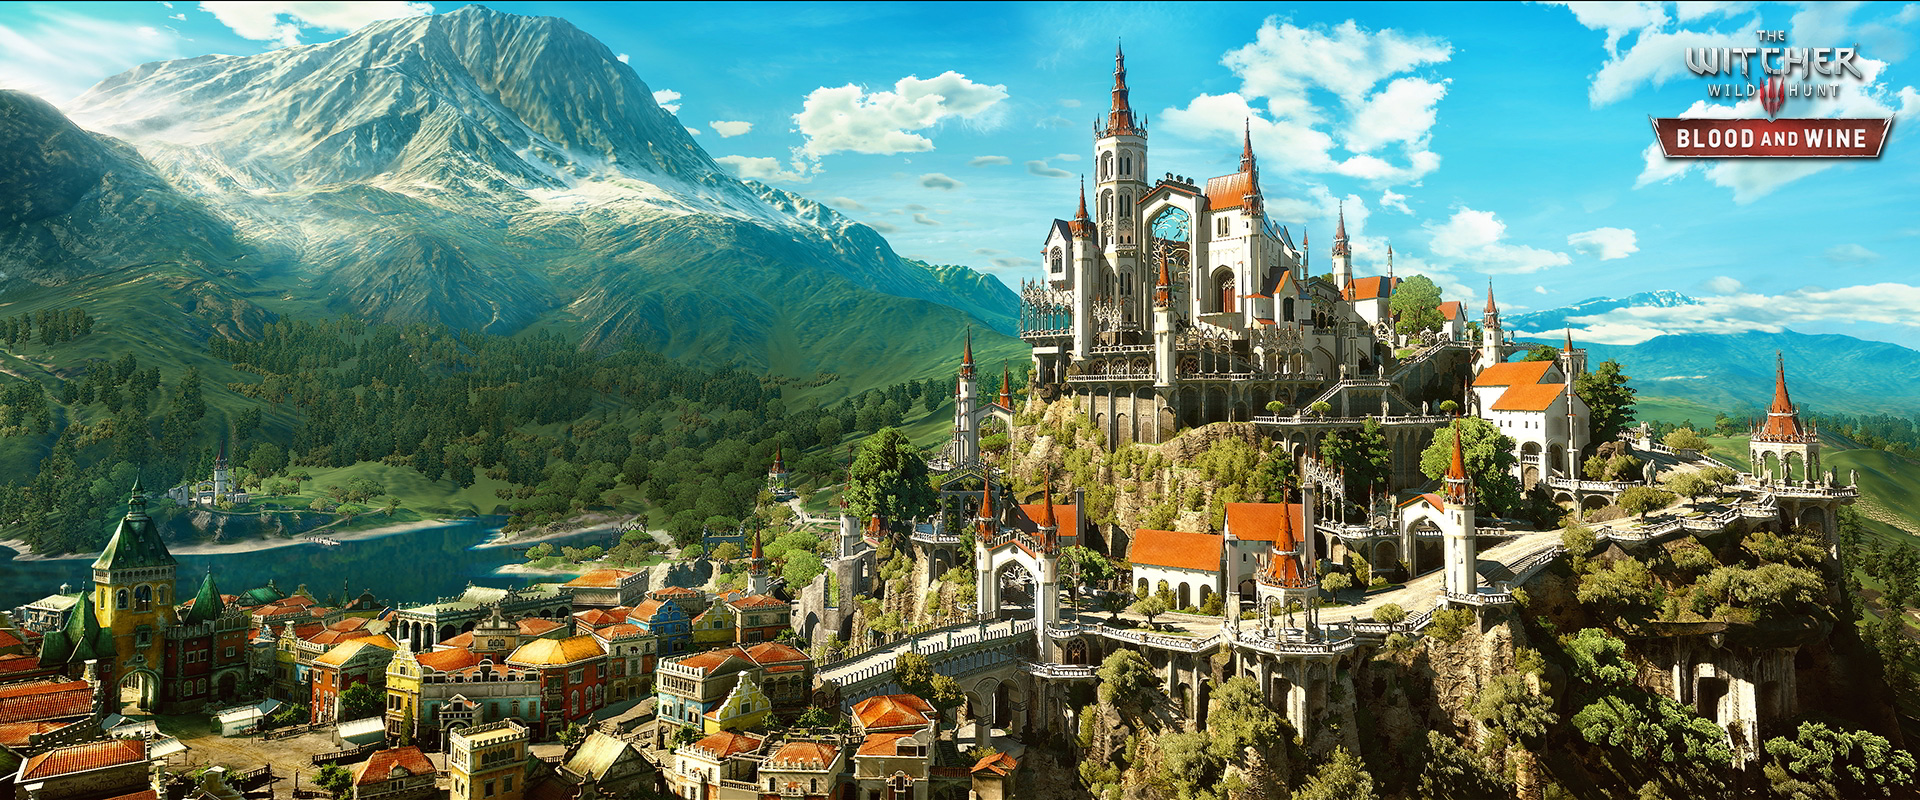 Ludophiles-Witcher-3-Blood-and-Wine-Beauclair.jpg